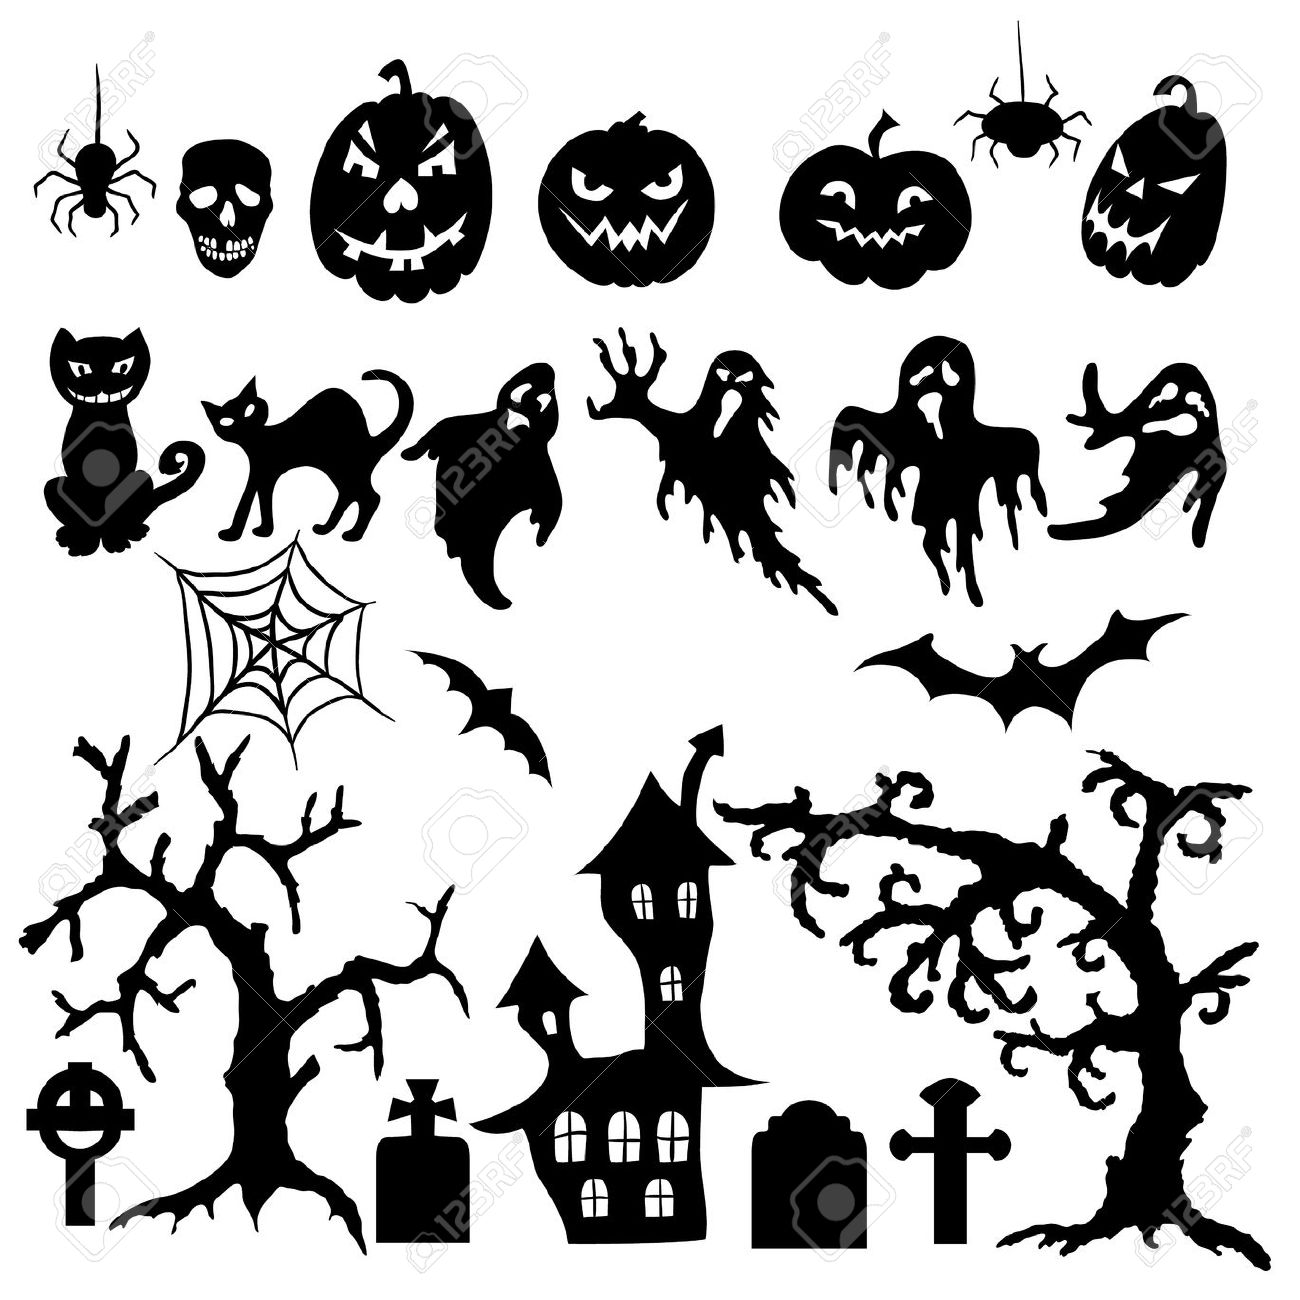 Halloween Silhouette Patterns At Getdrawings